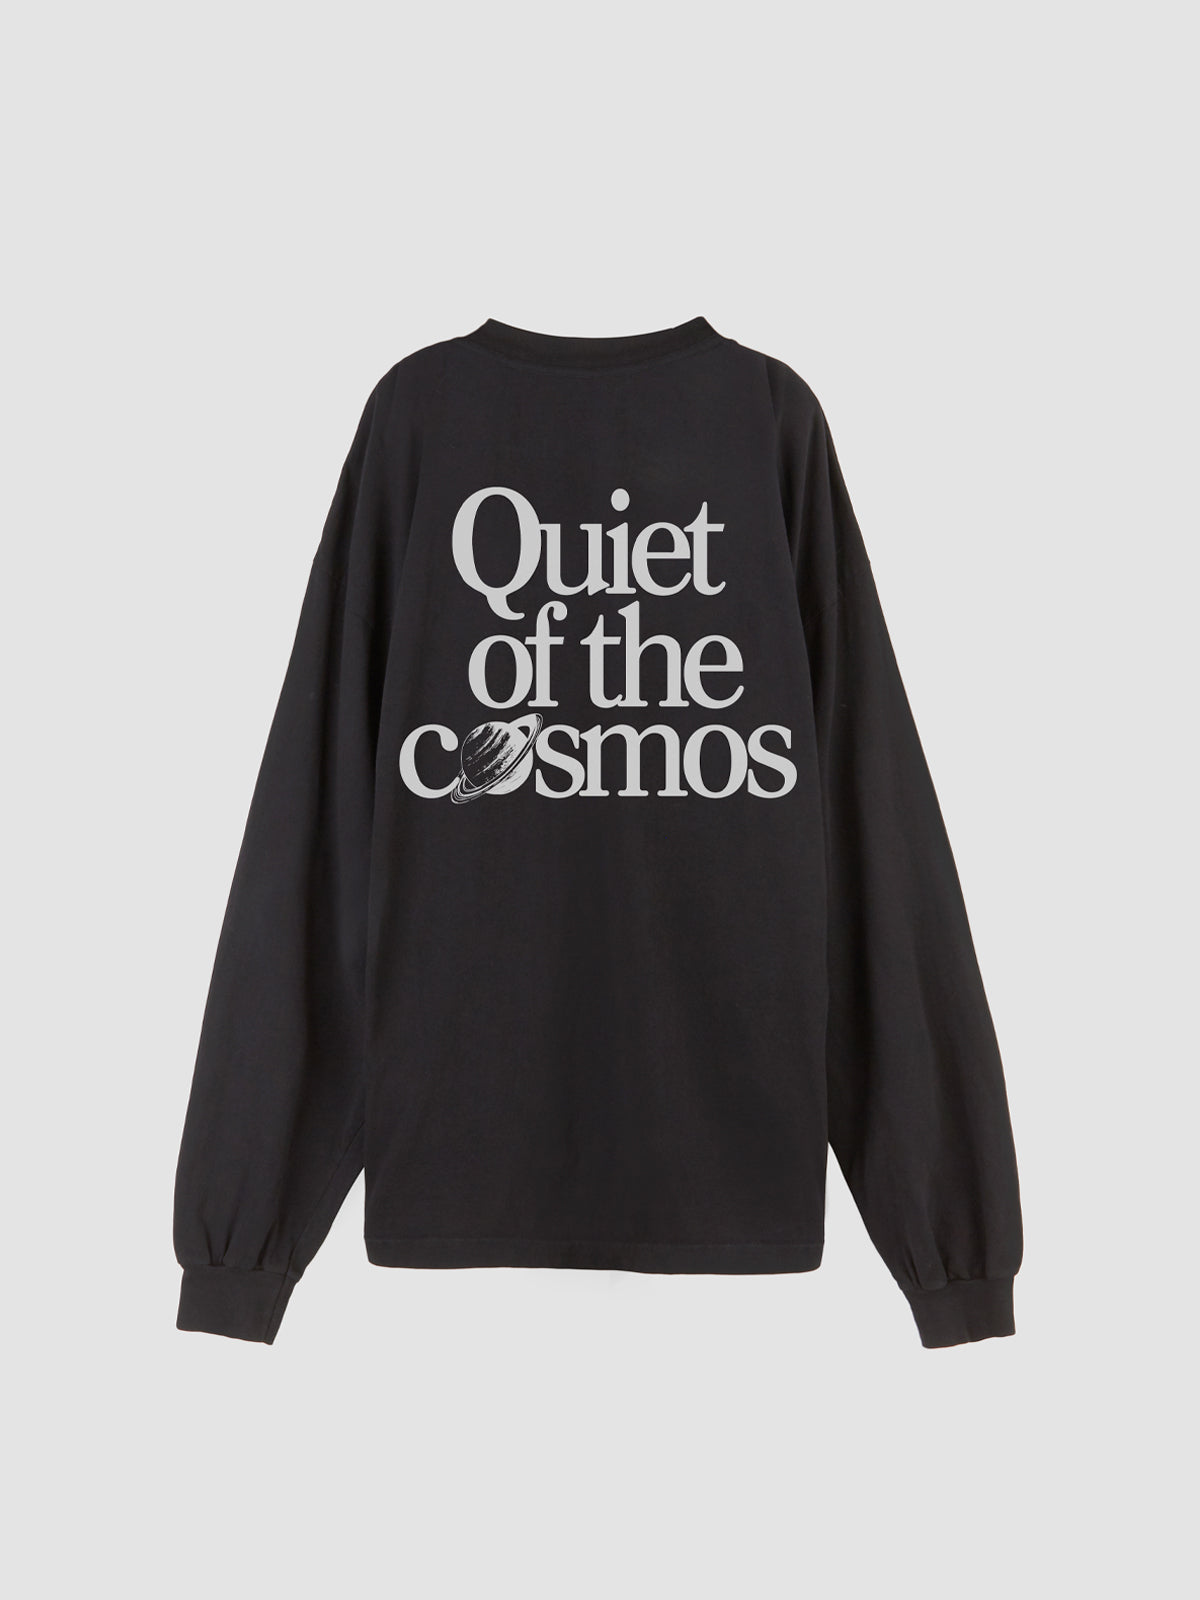 Quiet of The Cosmos — Limited Edition Black